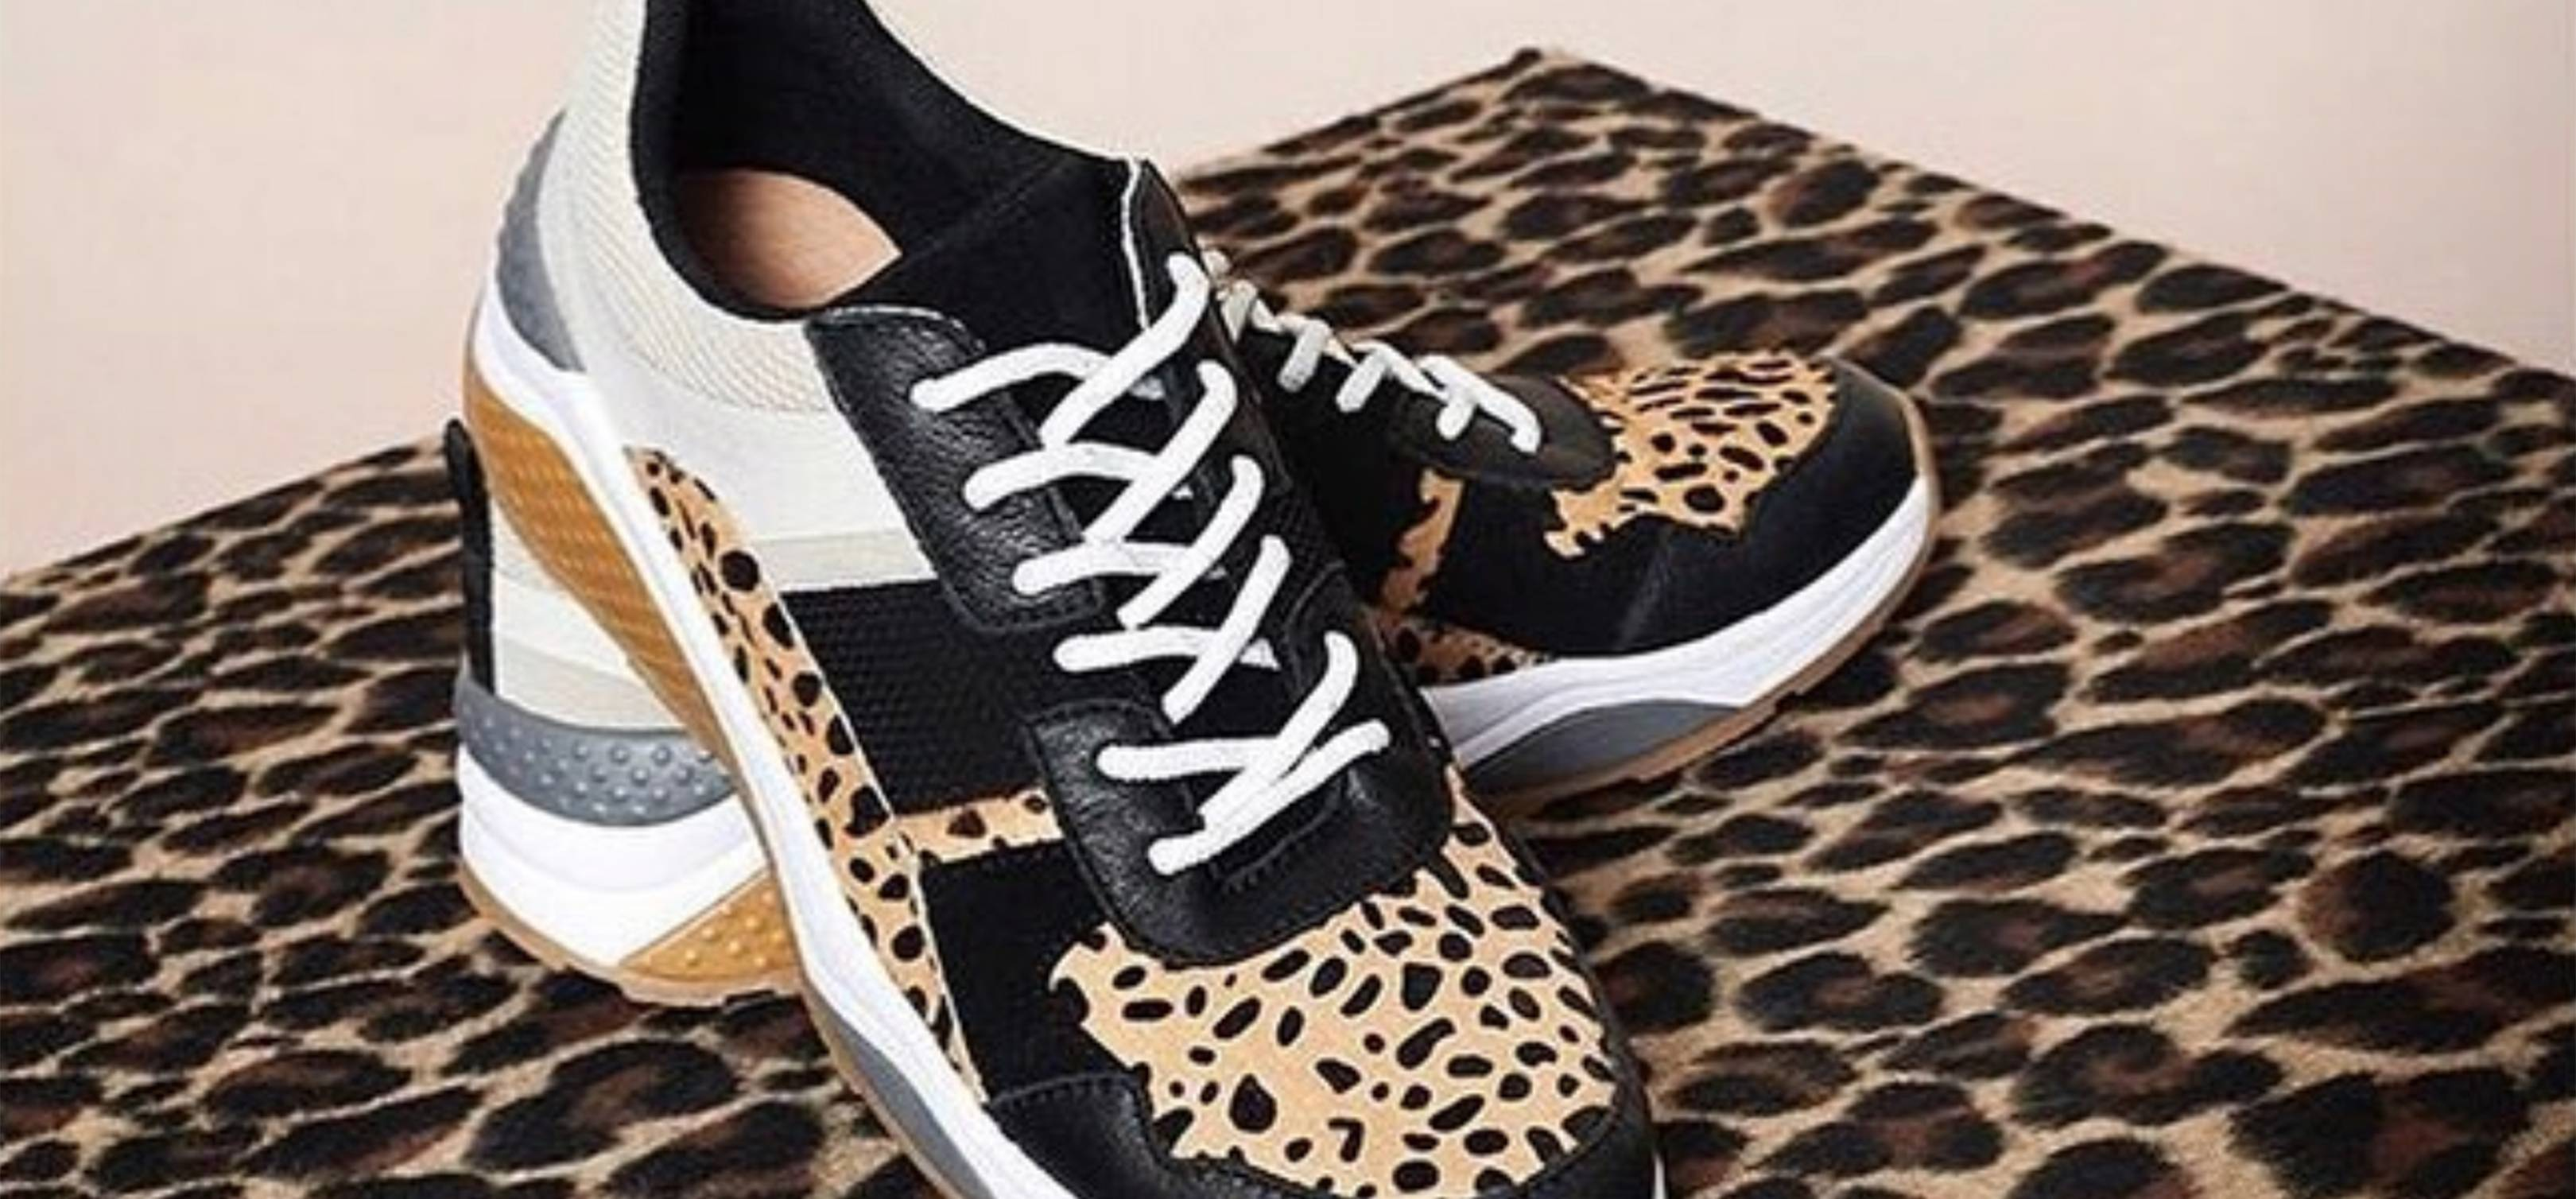 0f8643bbbde M&S Has Restocked Its Sell-Out Leopard Print Trainers | Glamour UK